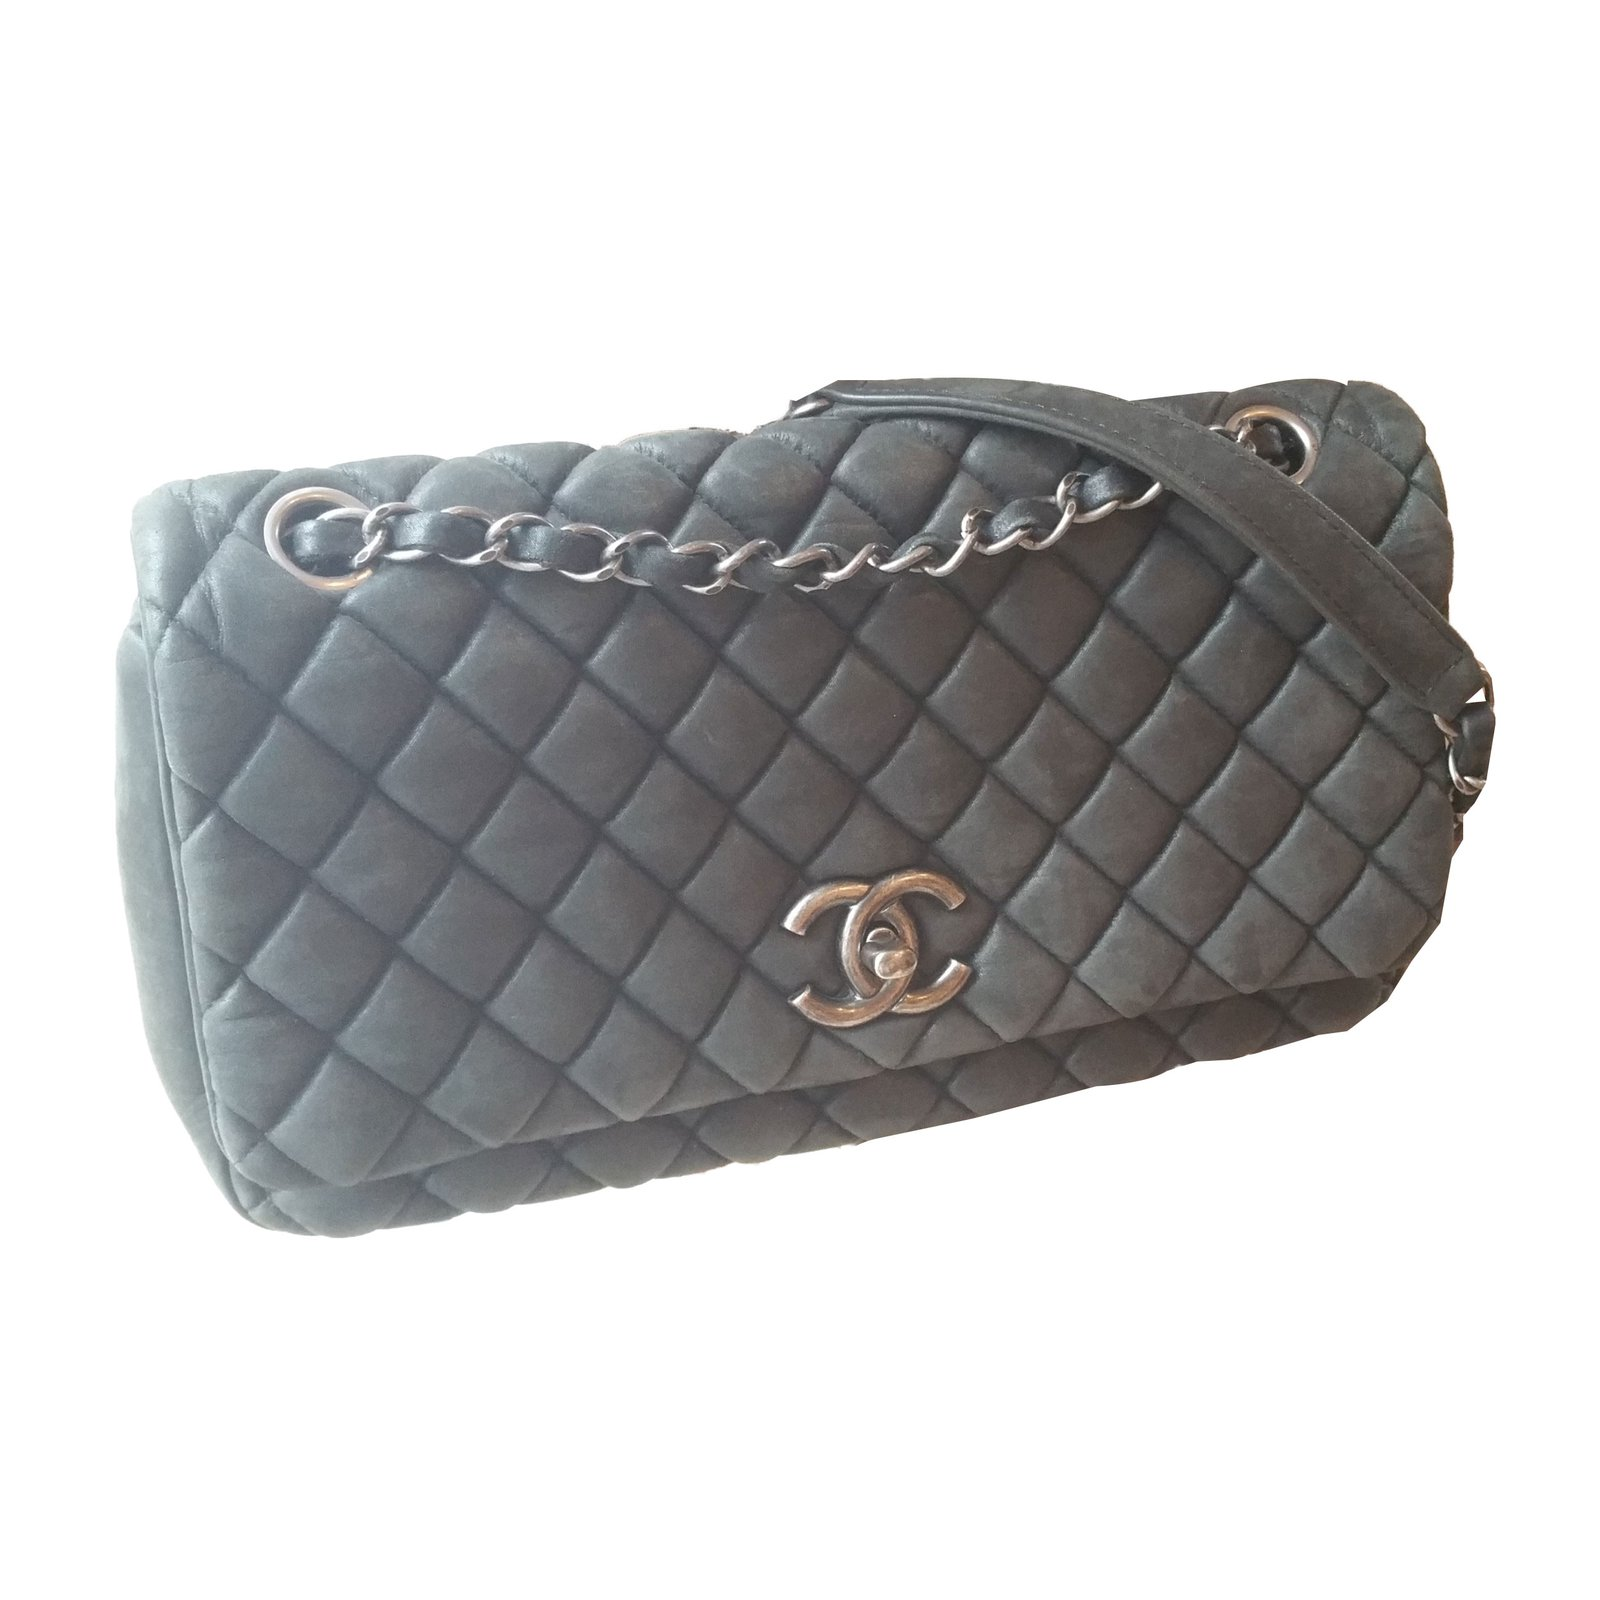 d67a06657bb8 Chanel Bag Handbags Leather Black ref.88716 - Joli Closet